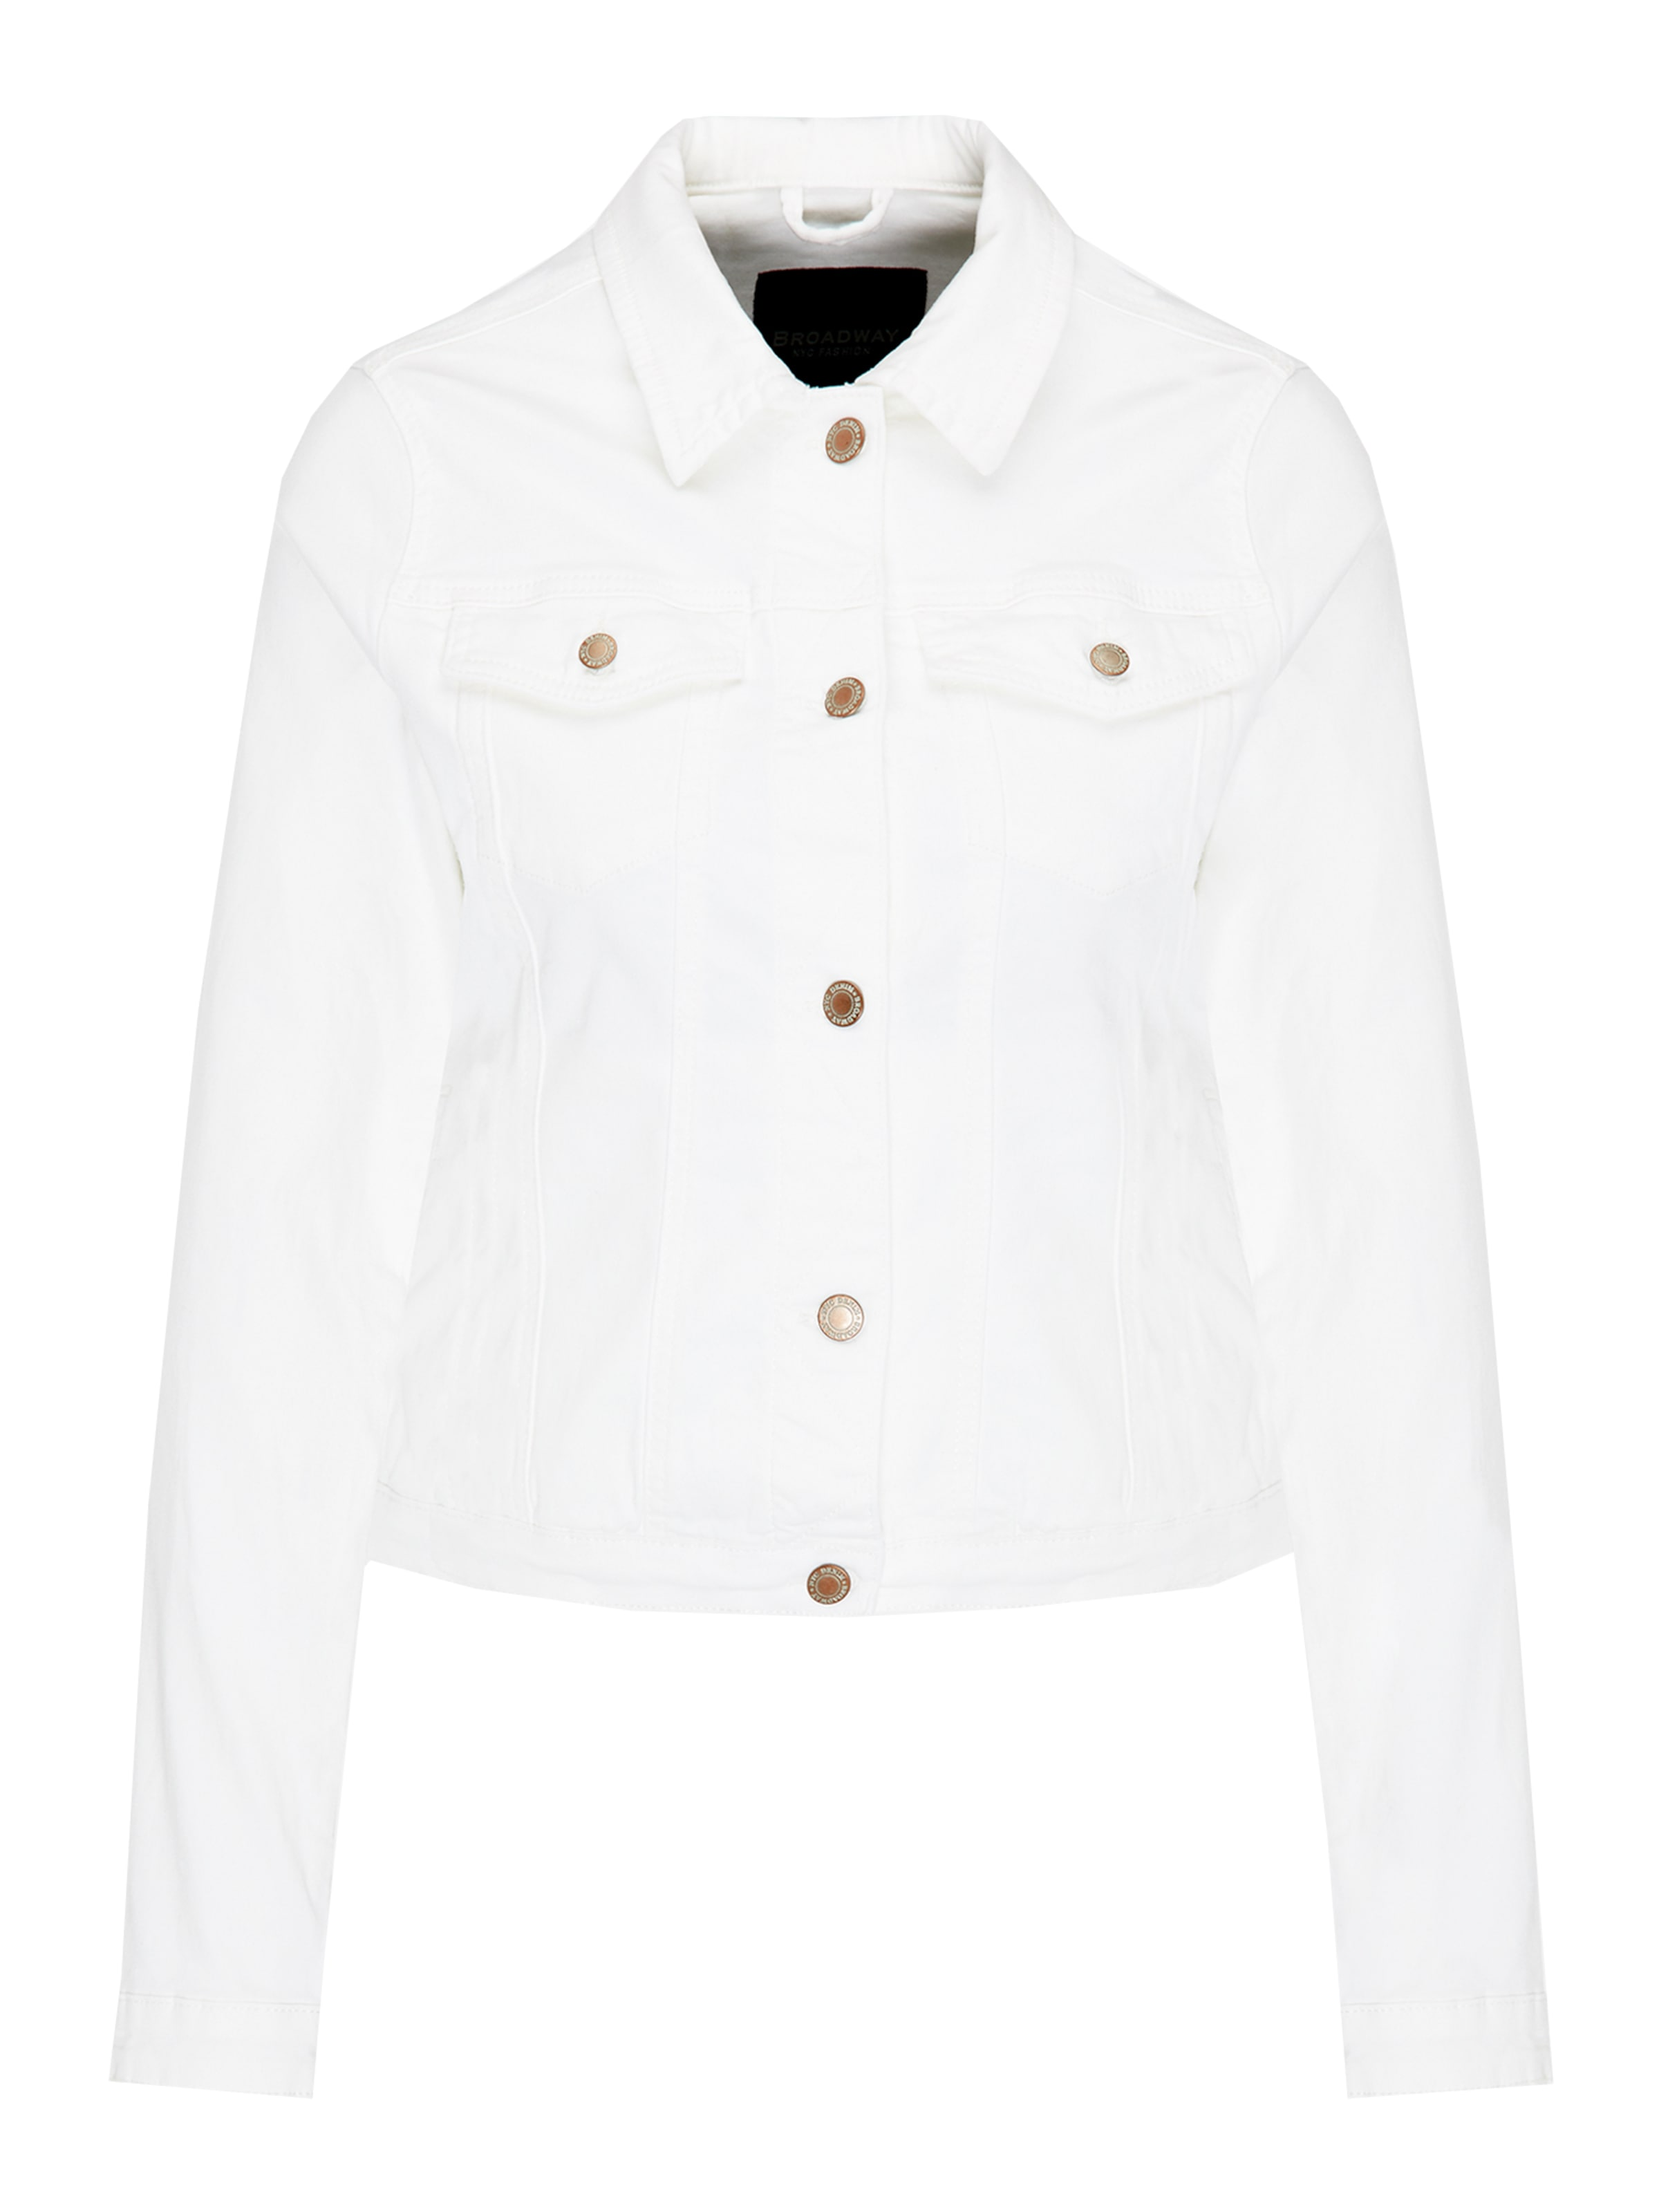 'jacket FashionVeste Mi Odell' saison Blanc Broadway Nyc In PkwO8nX0